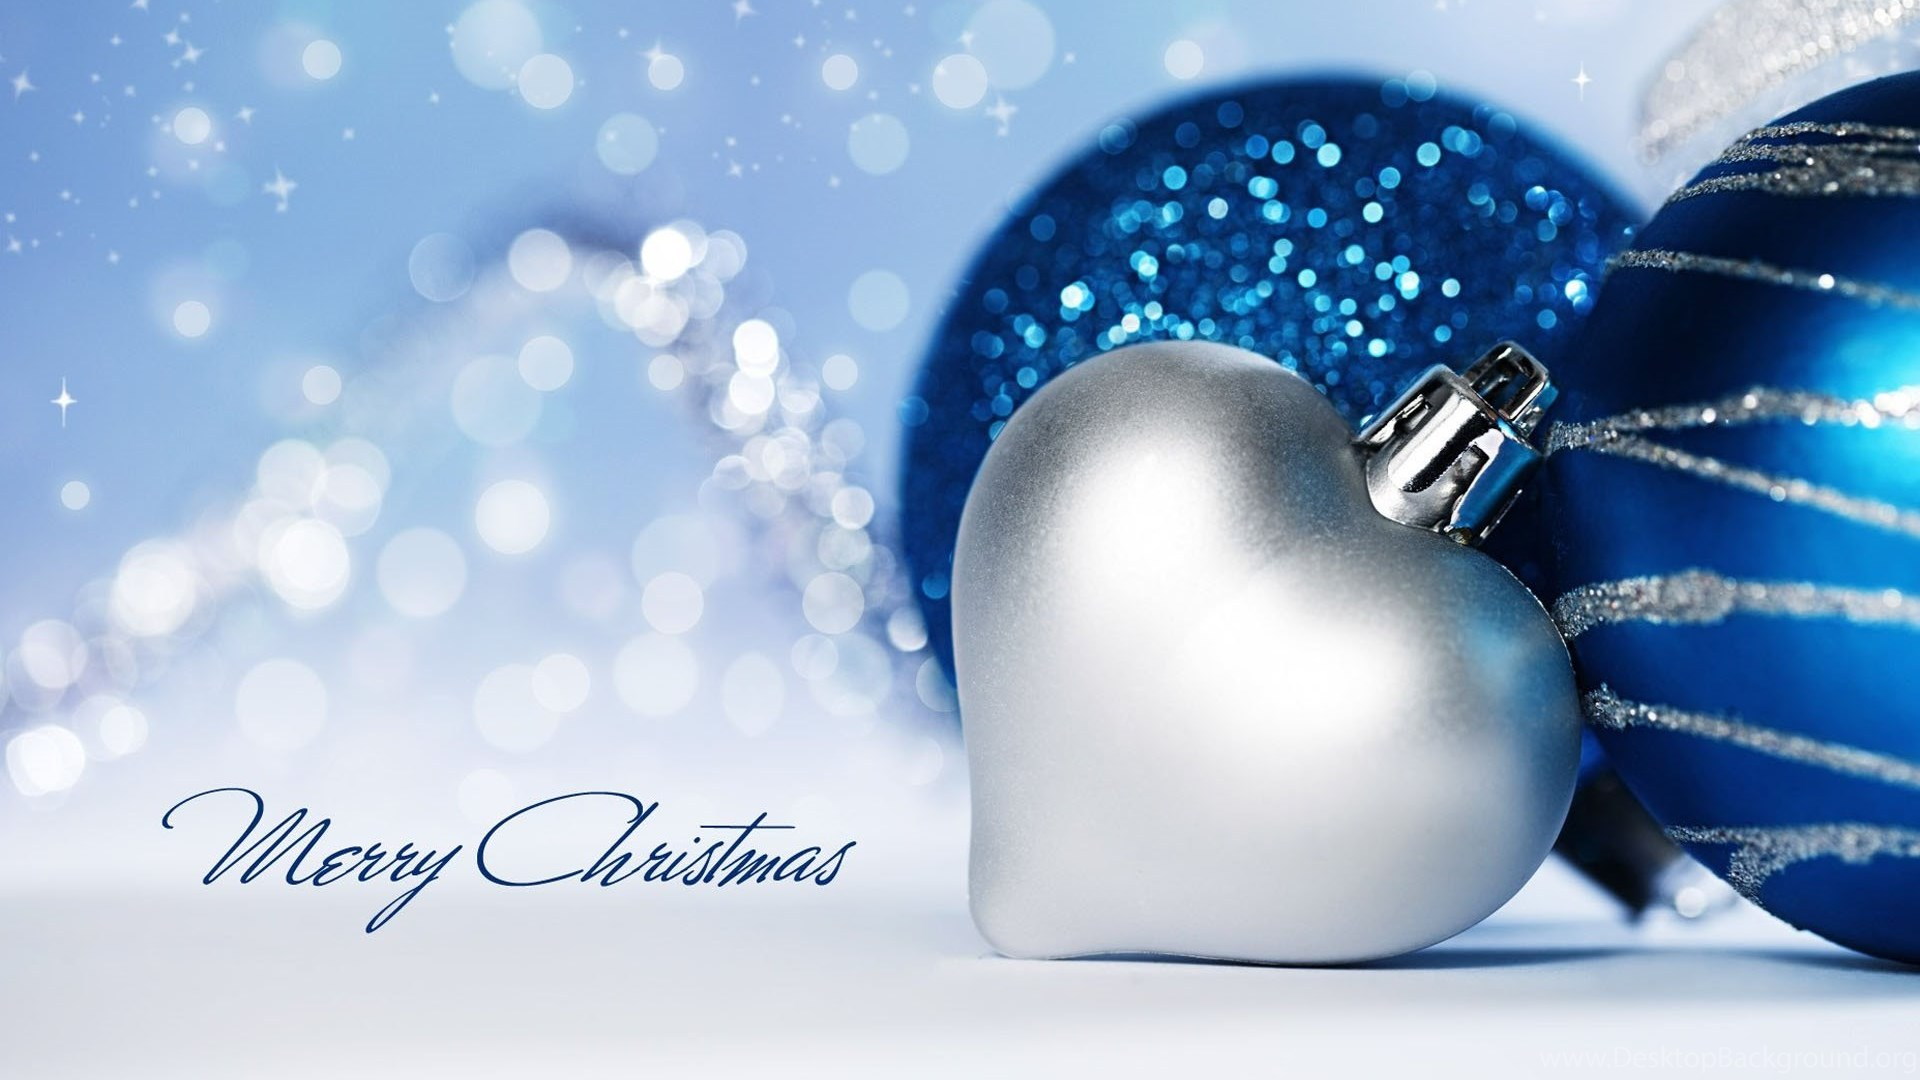 Christmas Heart Beautiful Hd Wallpaper With Blue Colorjpg